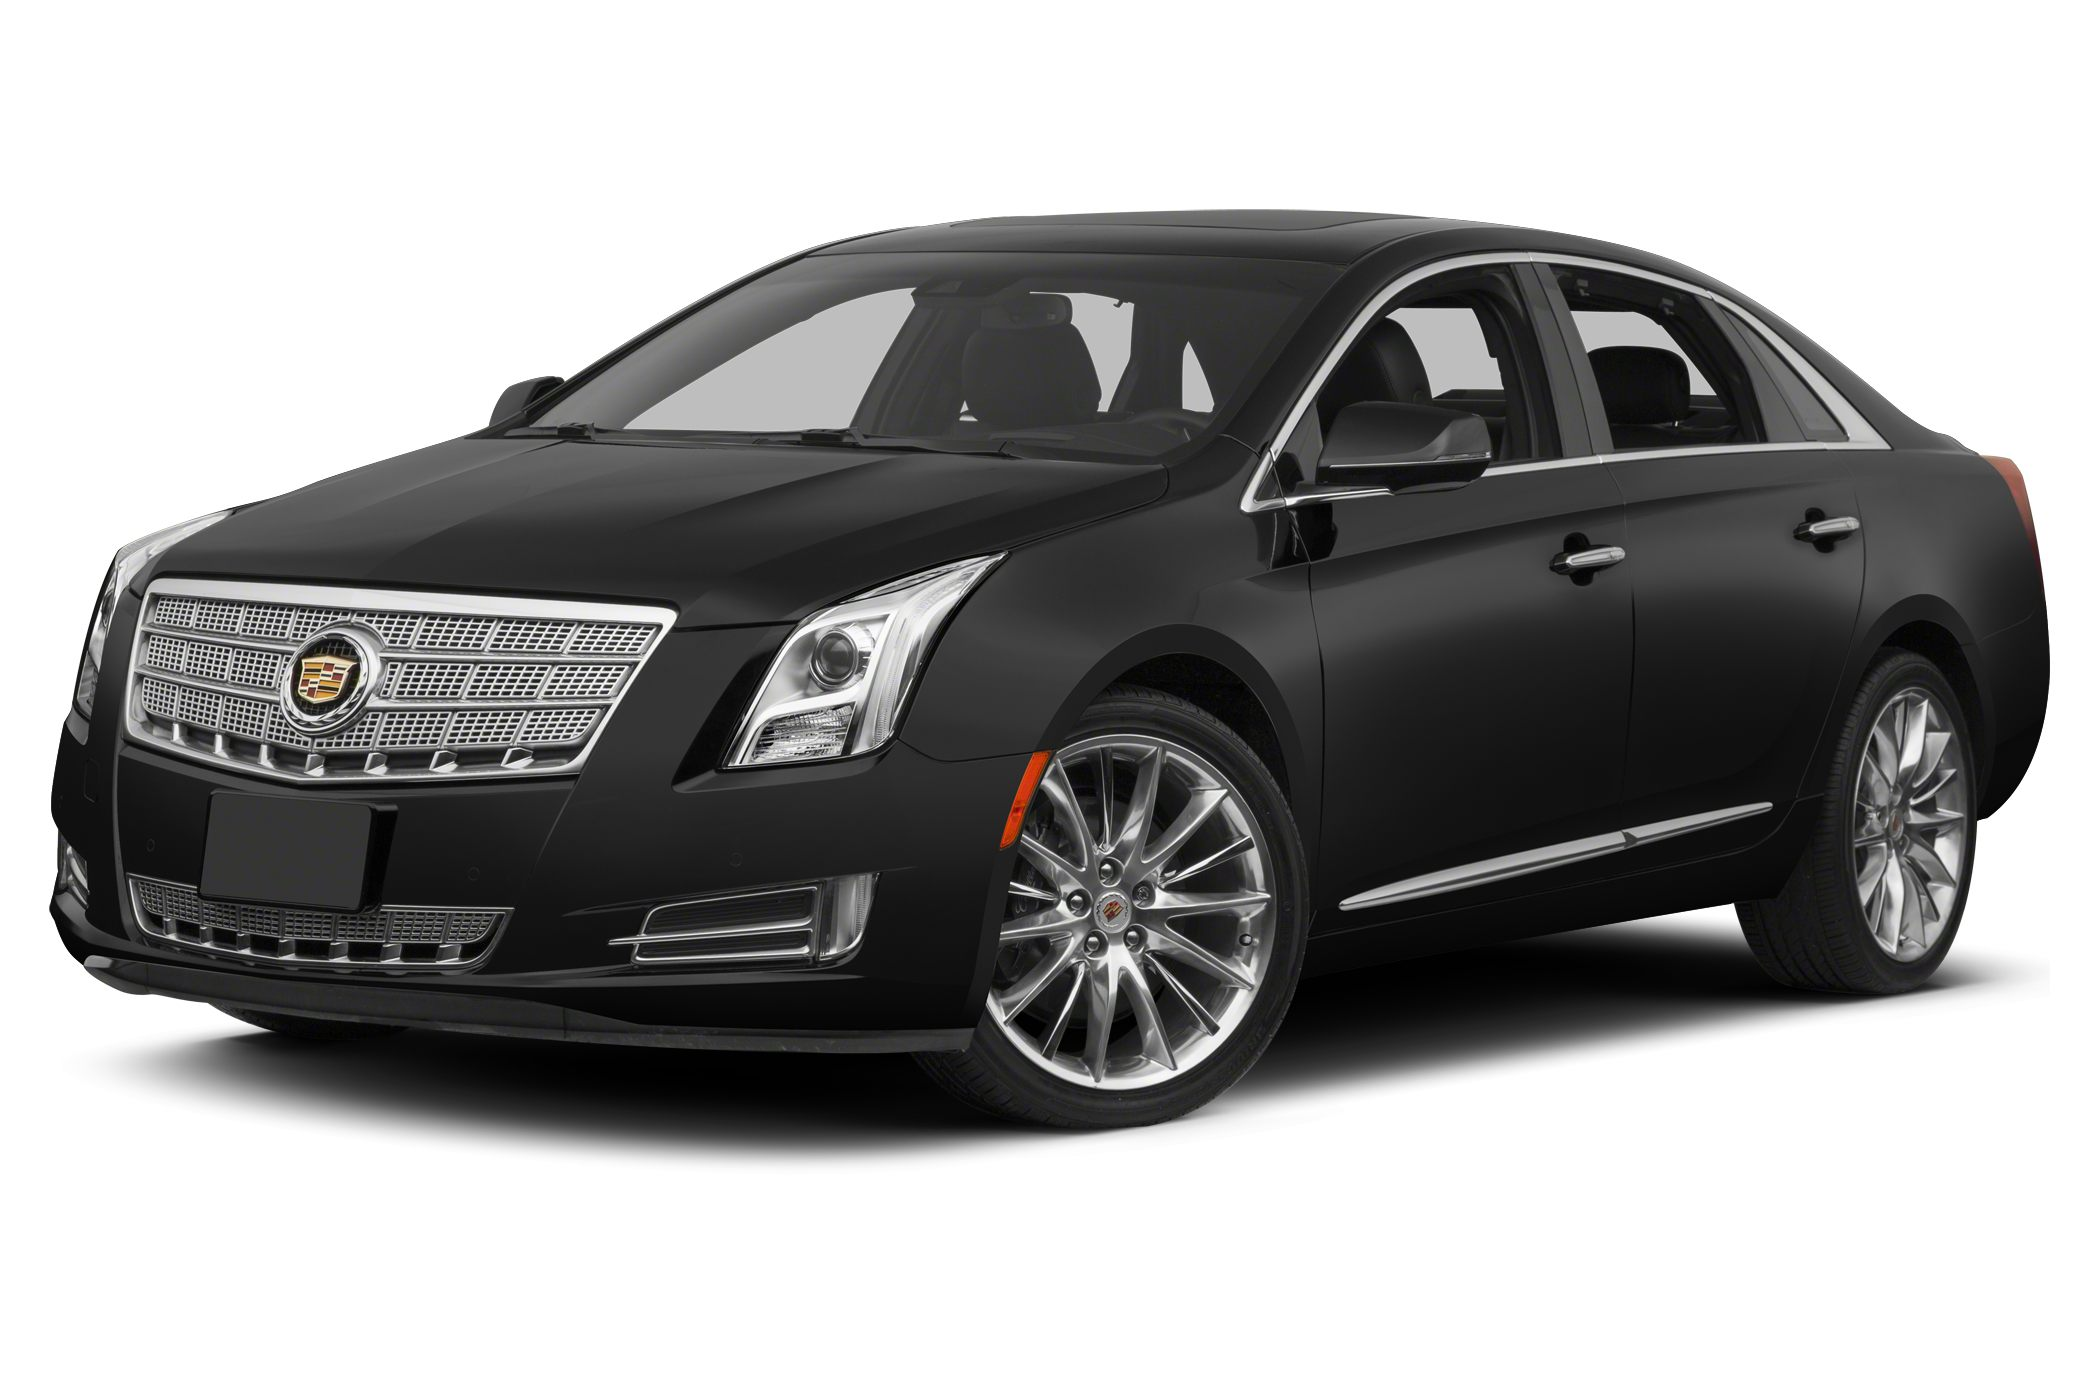 2013 Cadillac XTS Premium Sedan for sale in Butler for $59,845 with 0 miles